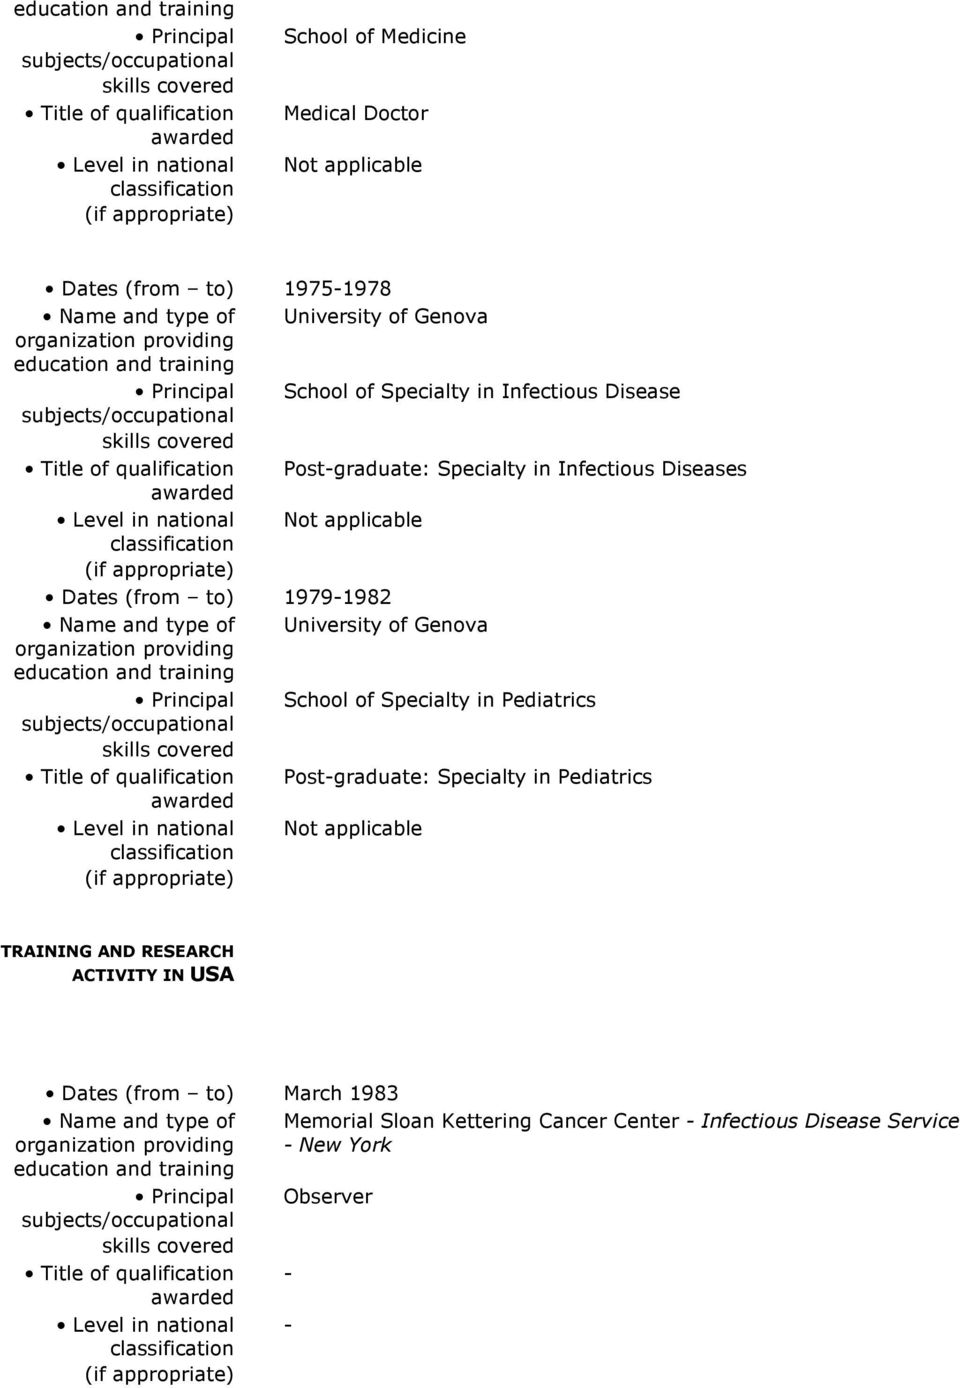 Title of qualification Post-graduate: Specialty in Infectious Diseases awarded Level in national Not applicable classification (if appropriate) Dates (from to) 1979-1982 Name and type of University